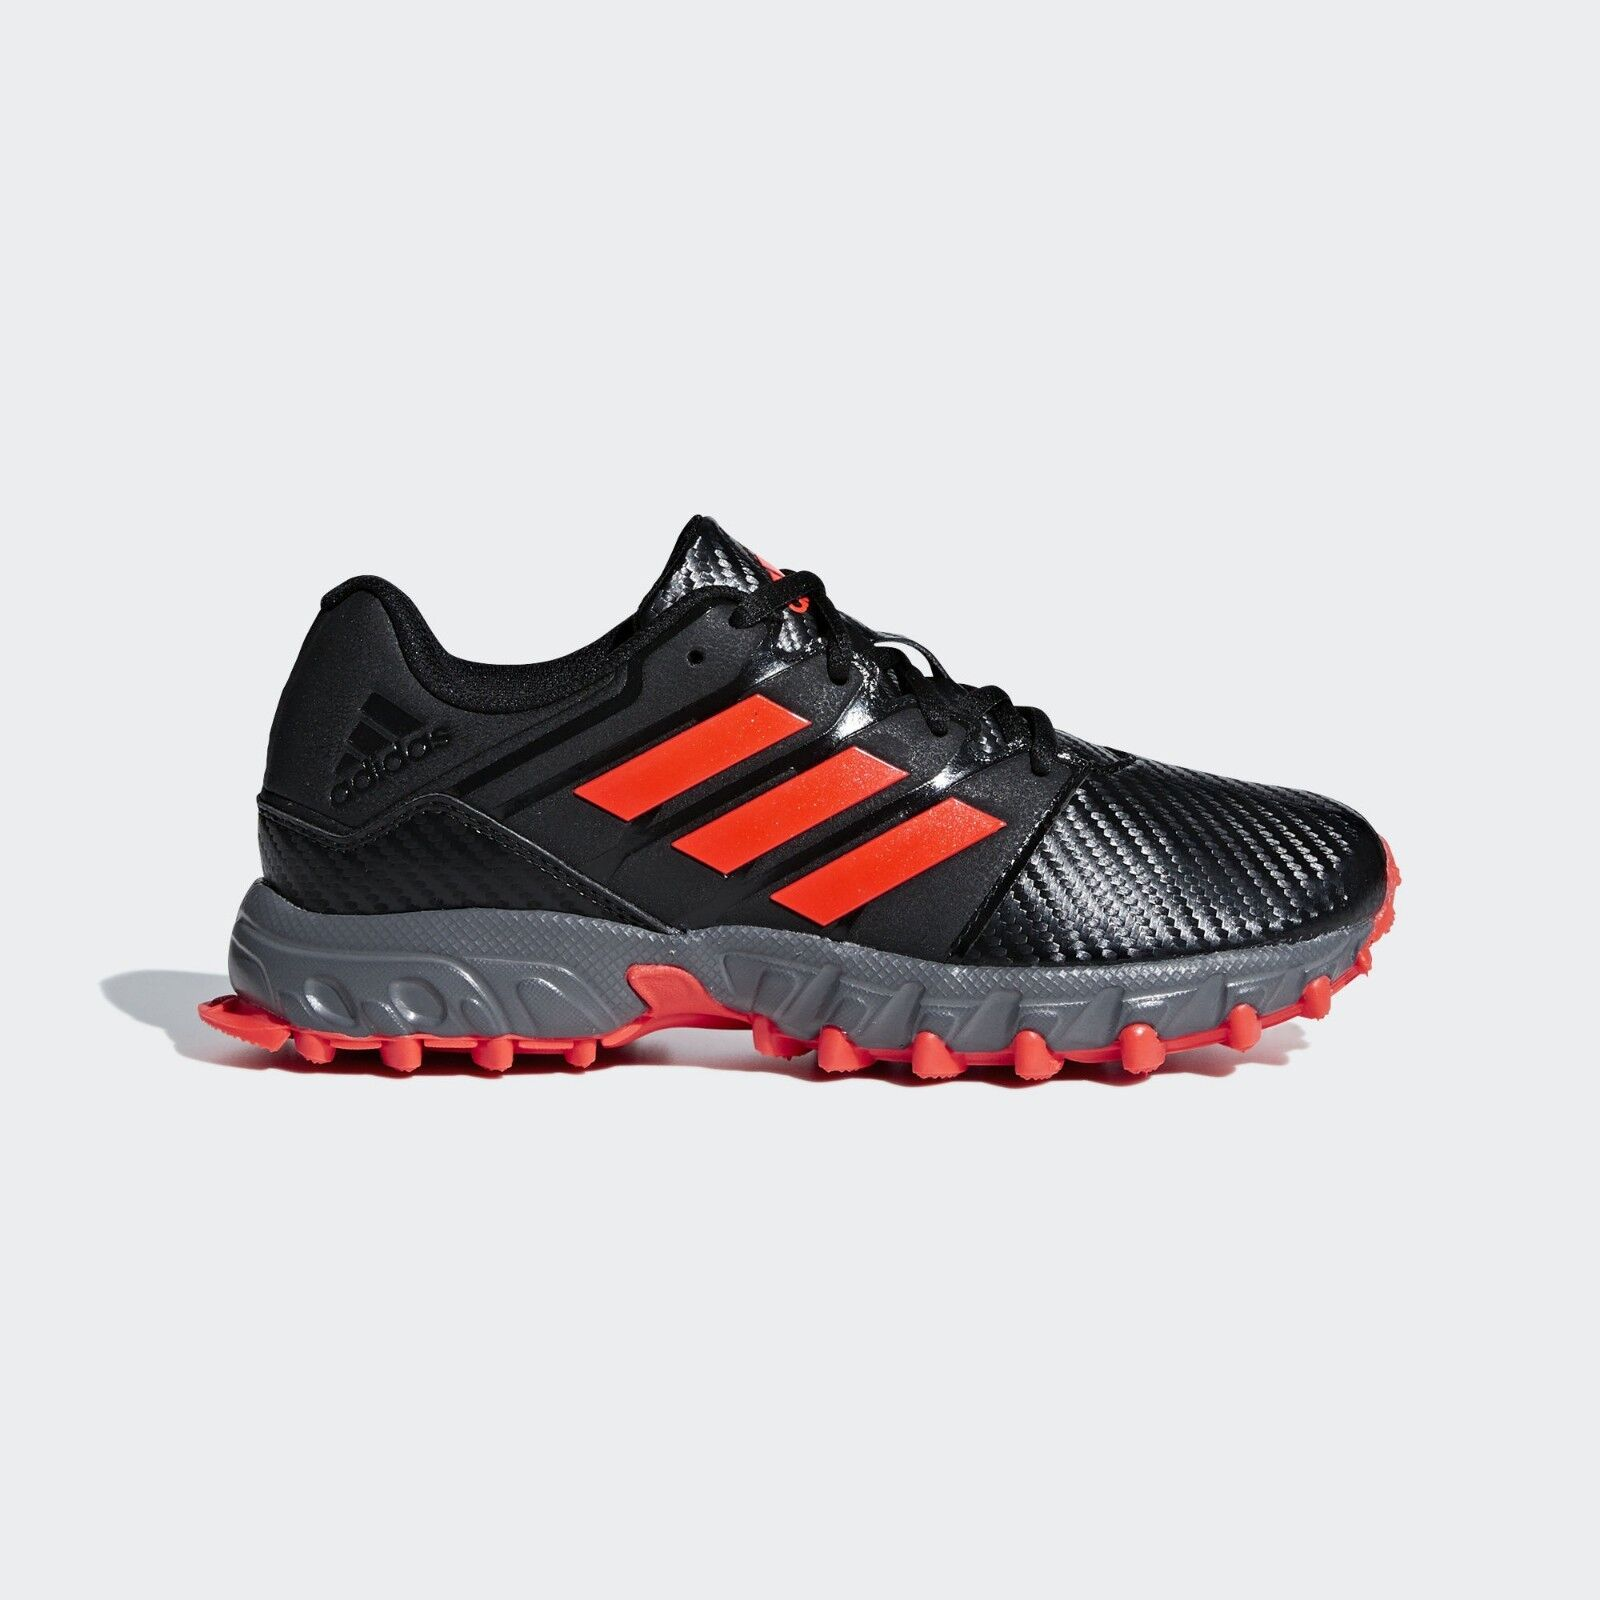 Details about adidas Field Hockey Lux Pro Junior Shoes Kids Boys Girls Black Red Trainers